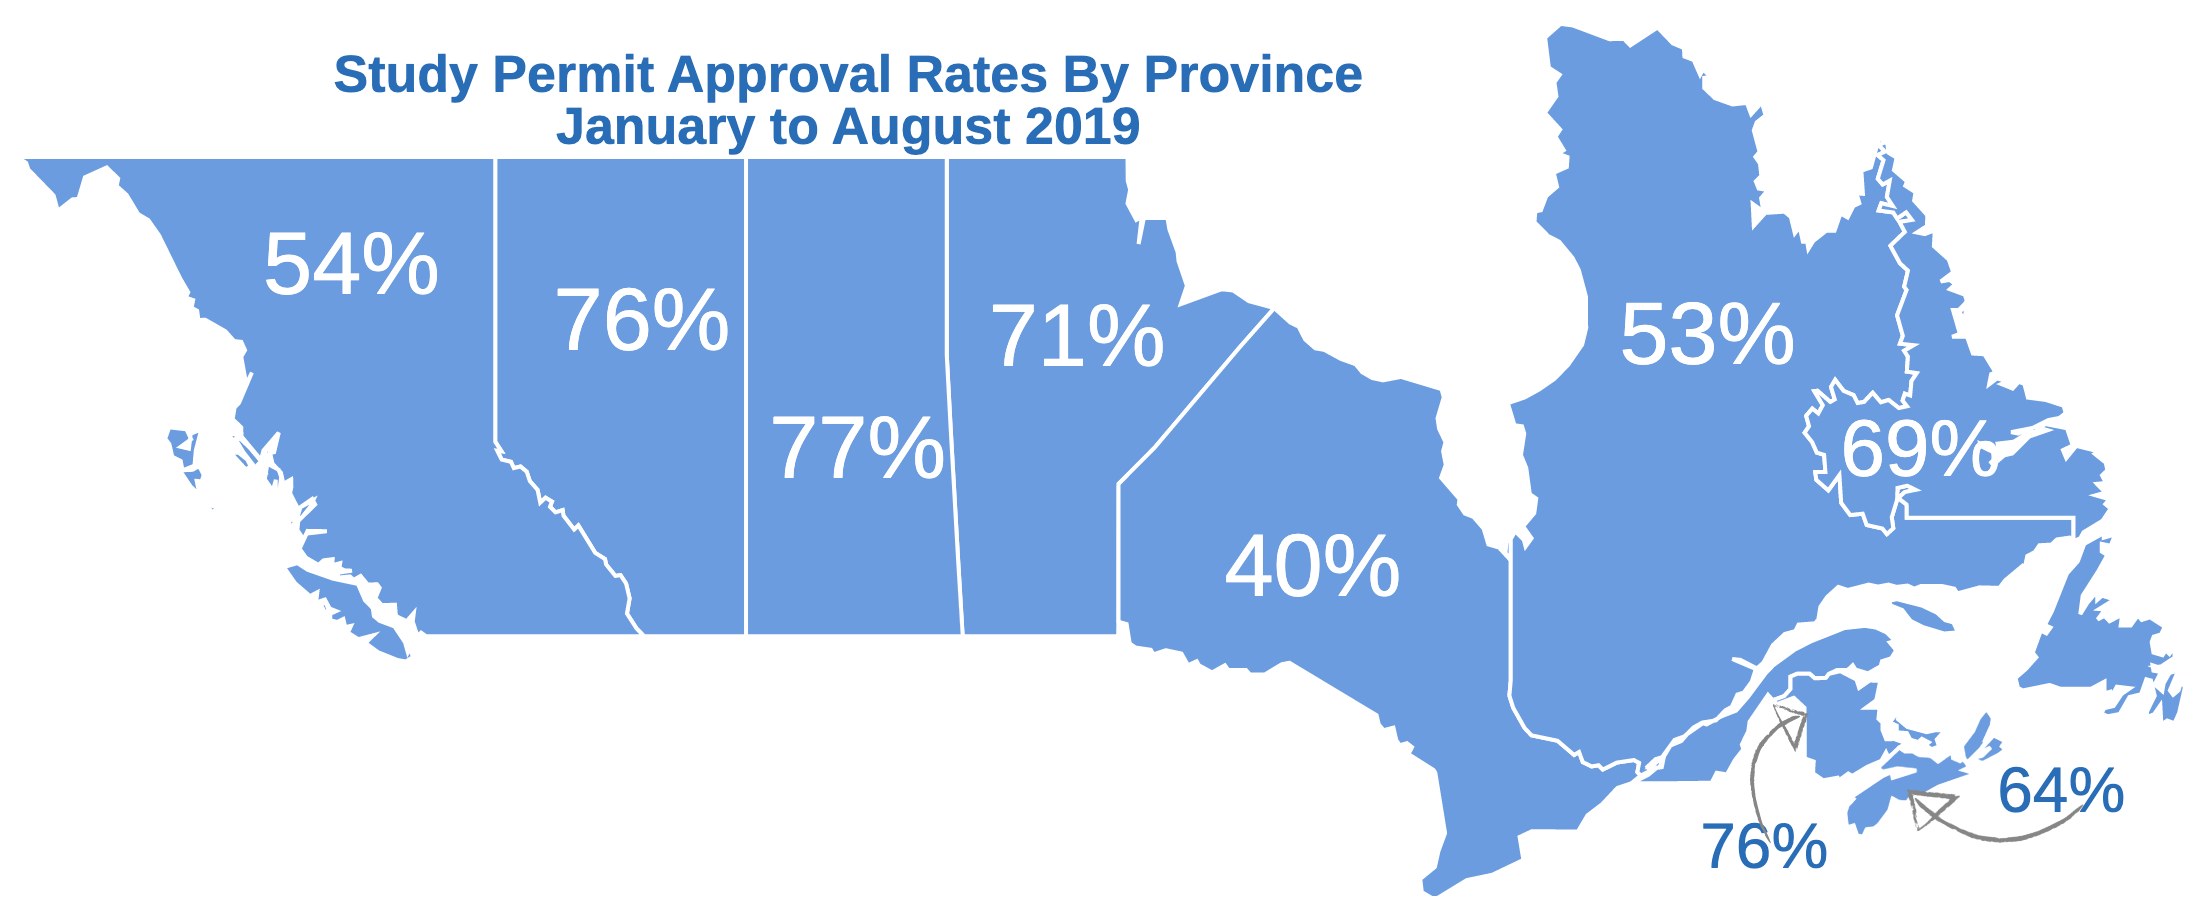 Study Permit Approval Rates By Province Map